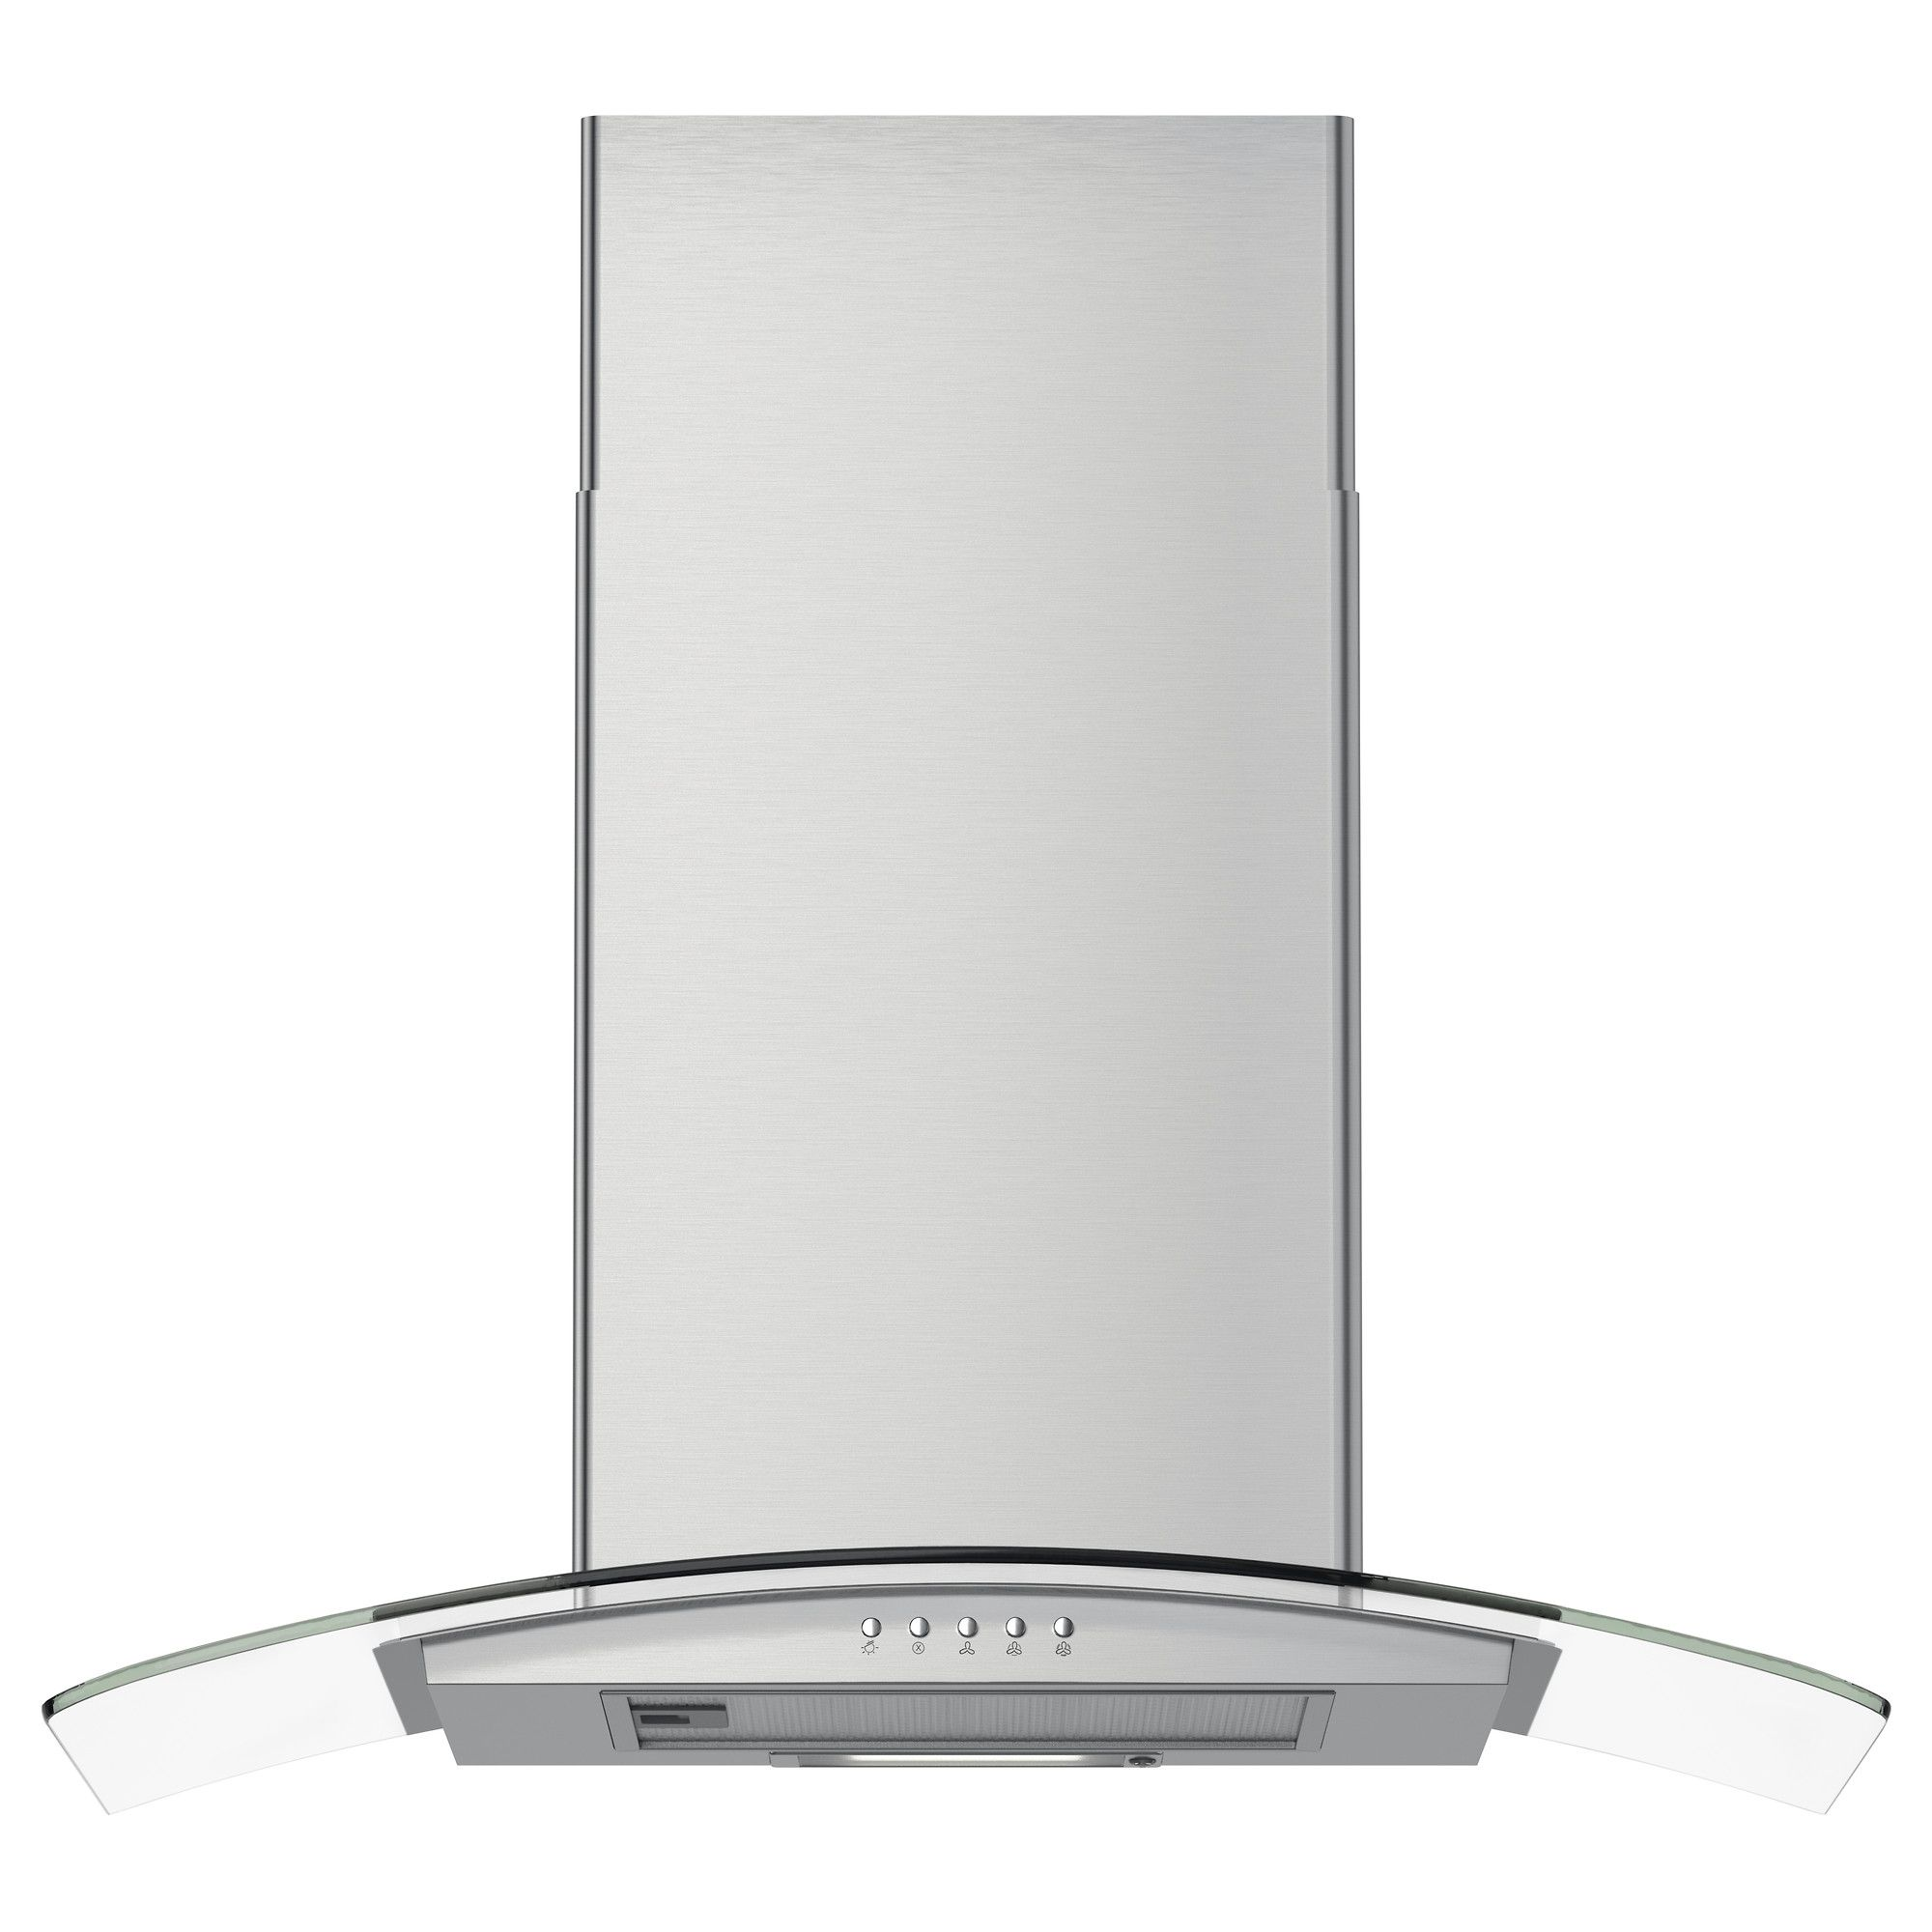 Ikea Us Furniture And Home Furnishings Extractor Hood Cabin